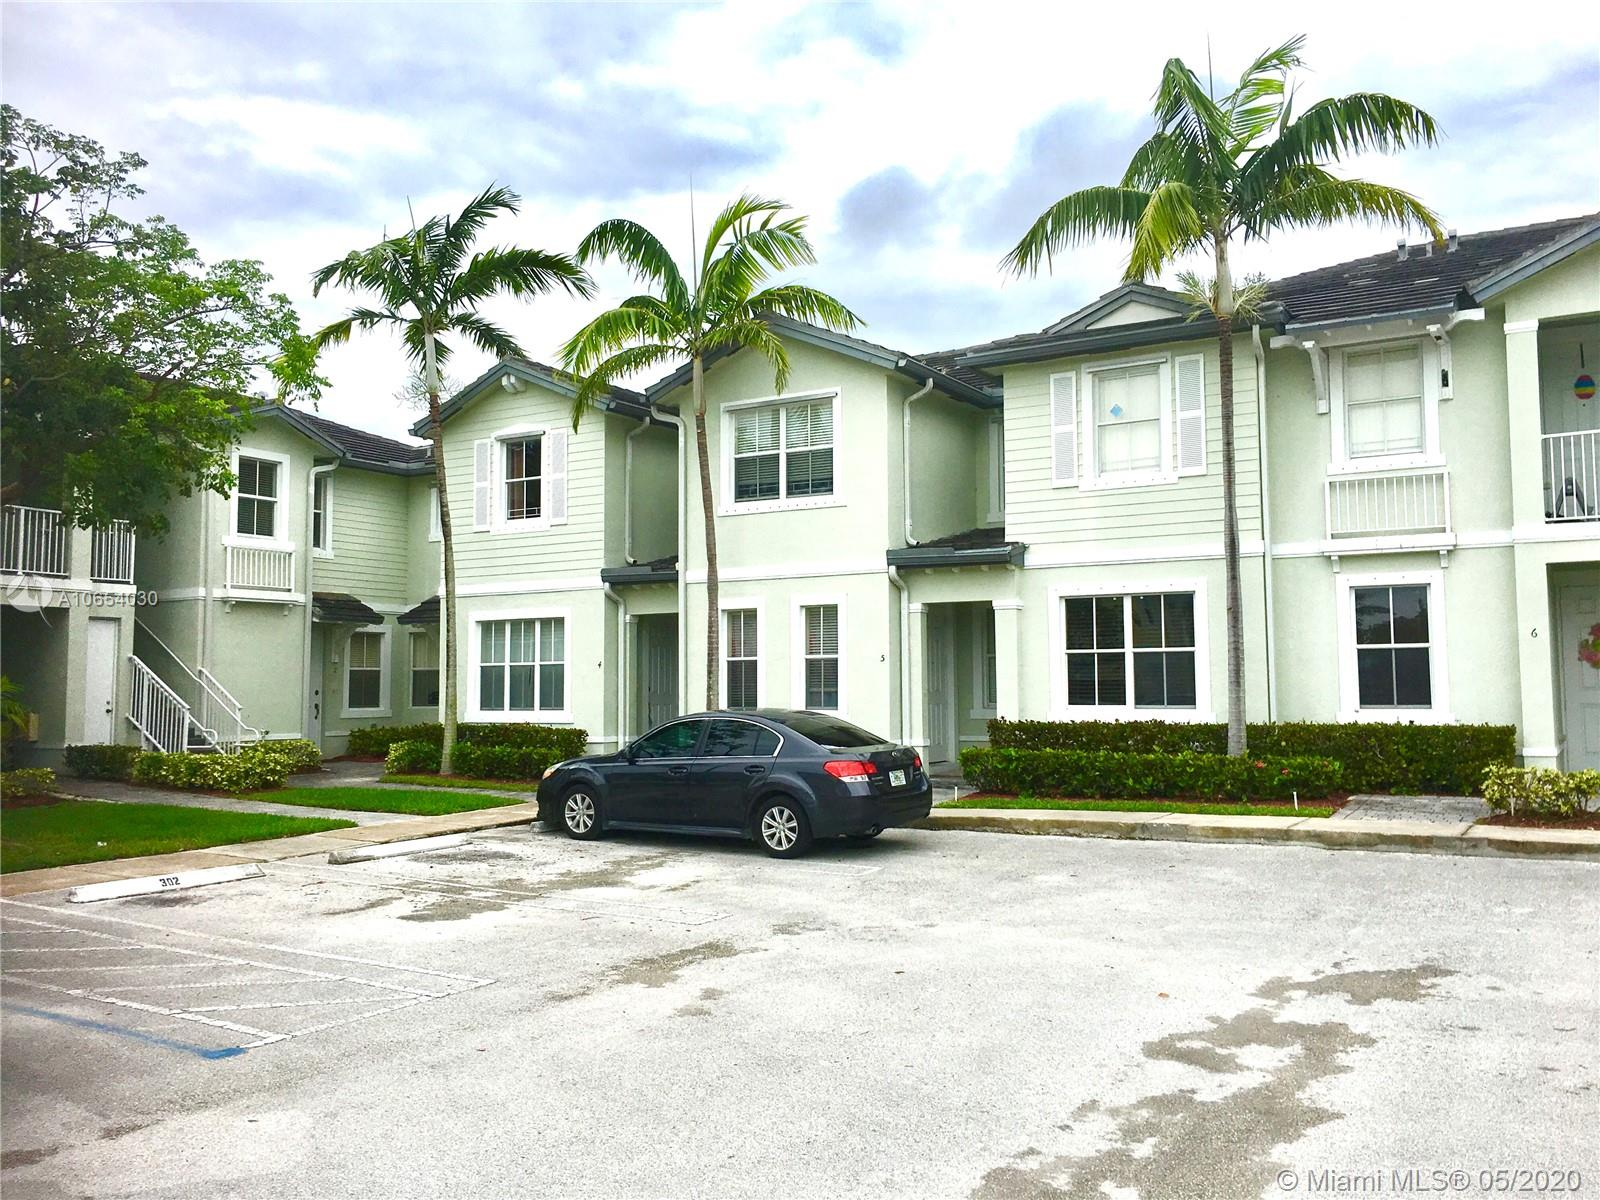 208 SE 29th Ave #4, Homestead, FL 33033 - Homestead, FL real estate listing